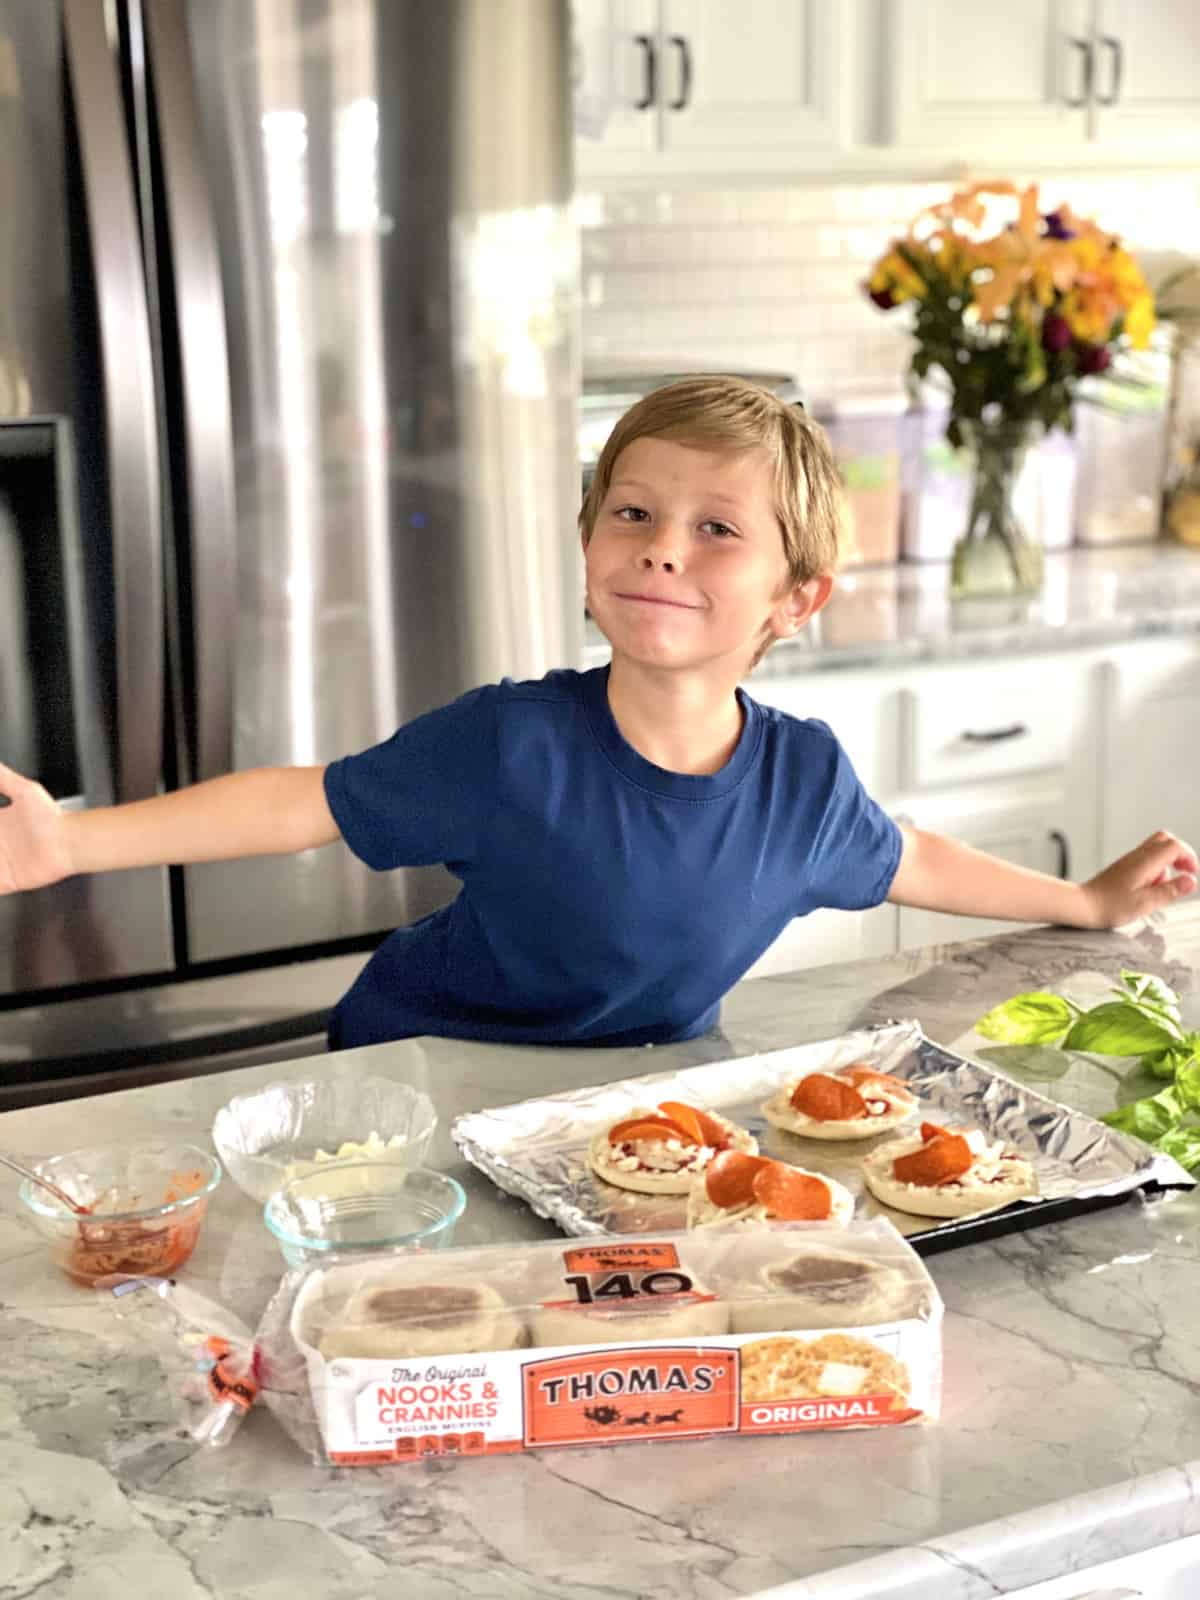 Little Boy making Toaster Oven English Muffin Pizzas on aluminum foil covered pan with ingredients displayed.